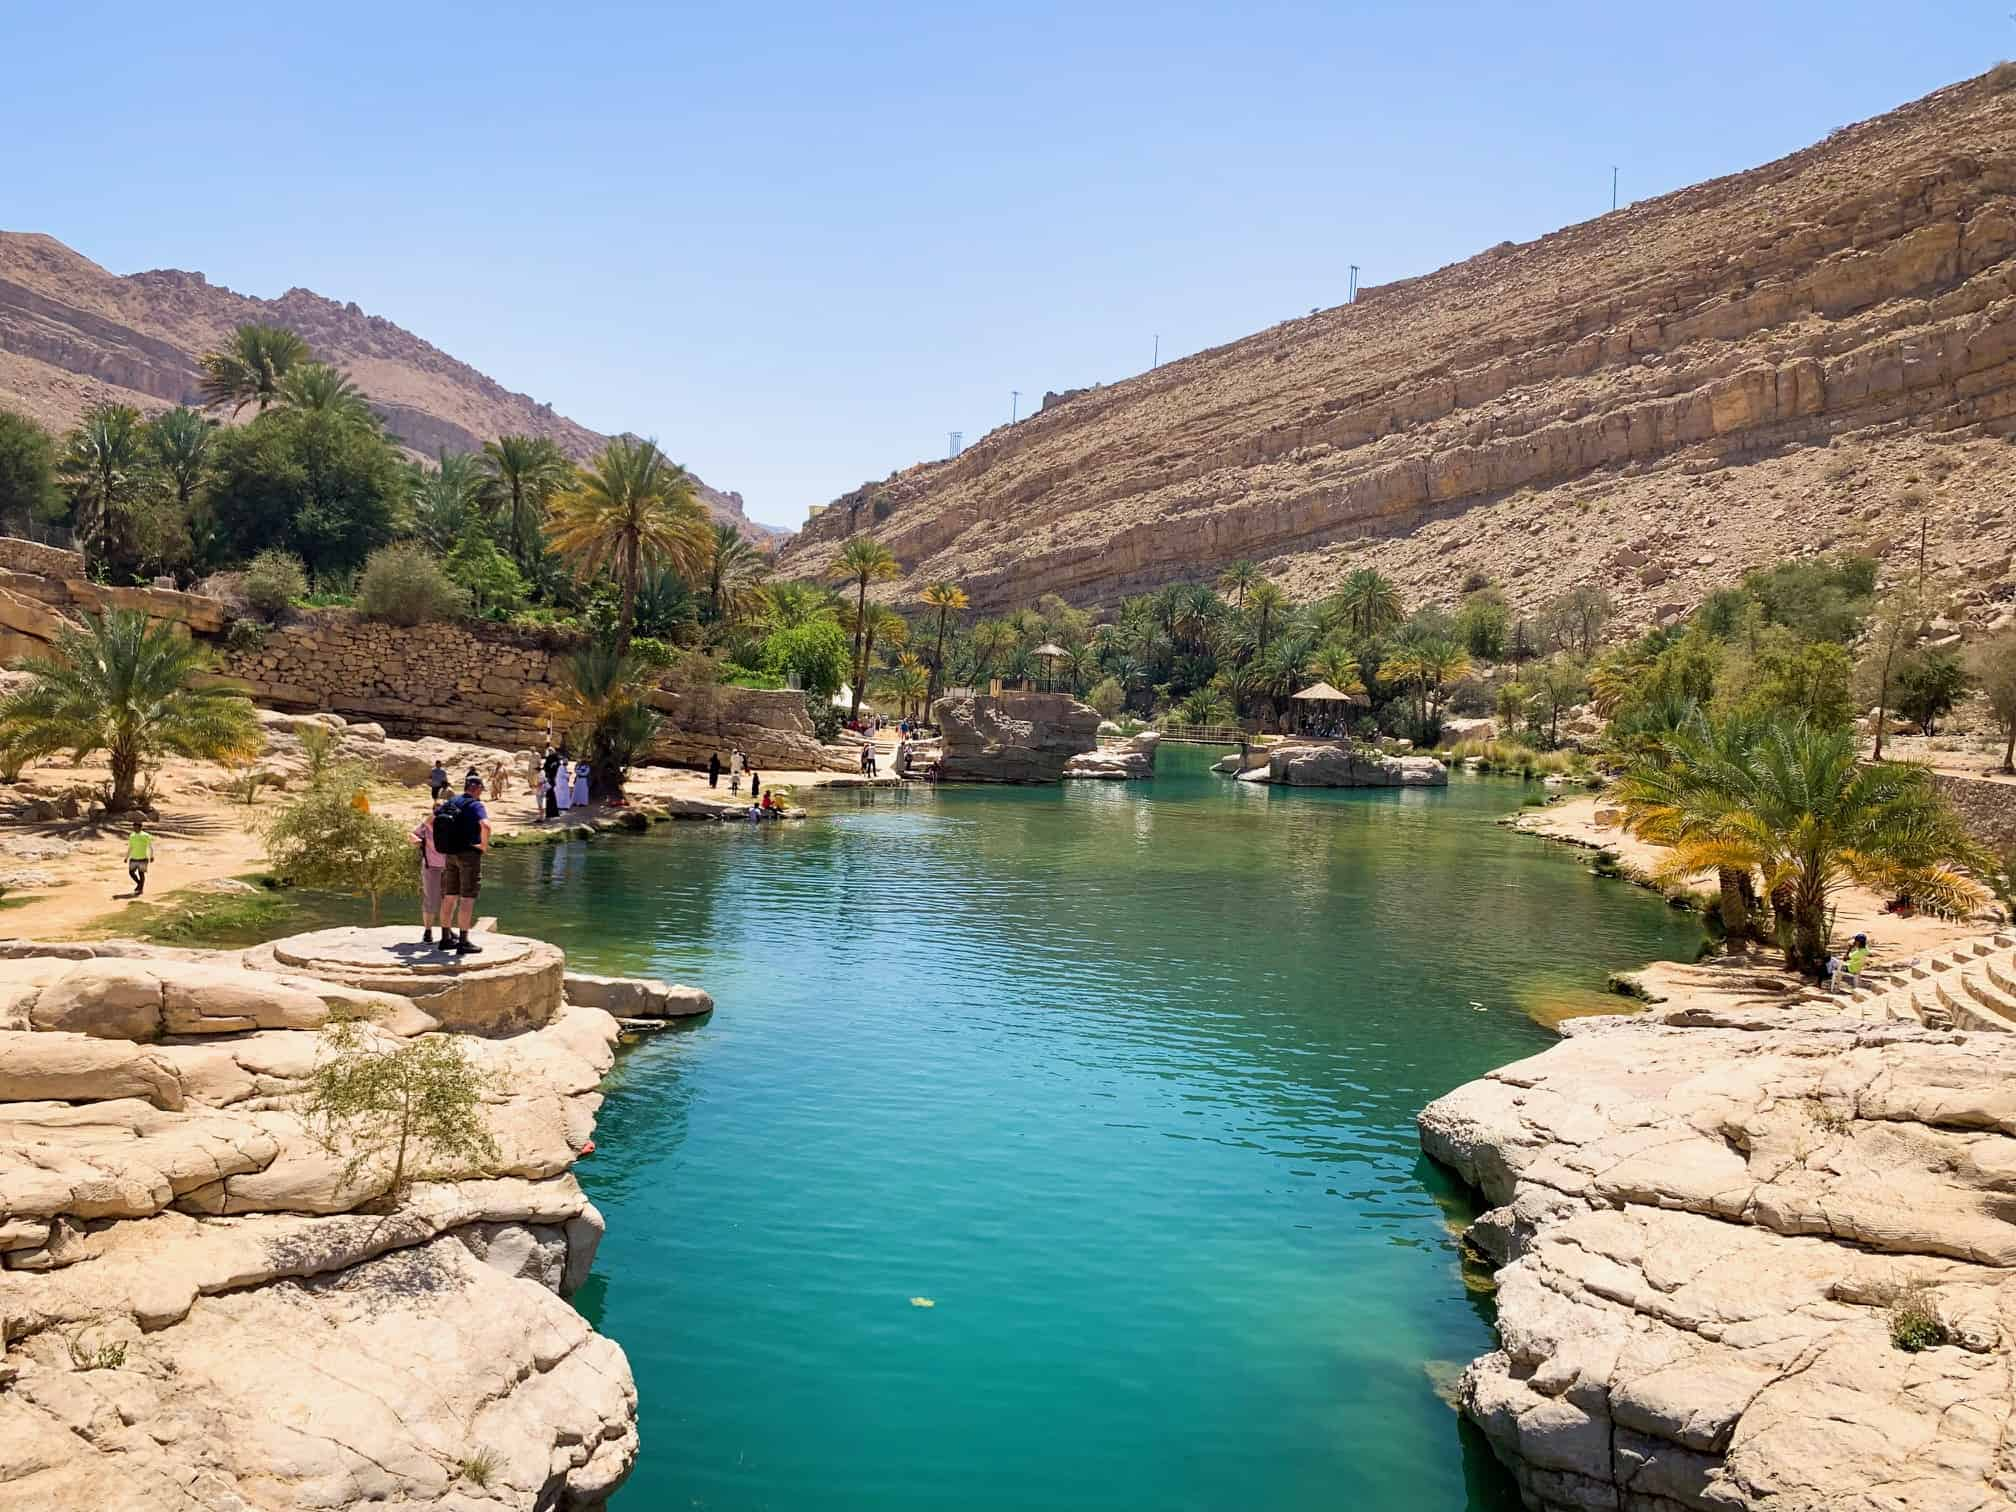 Swimming at the large pool at Wadi Bani Khalid